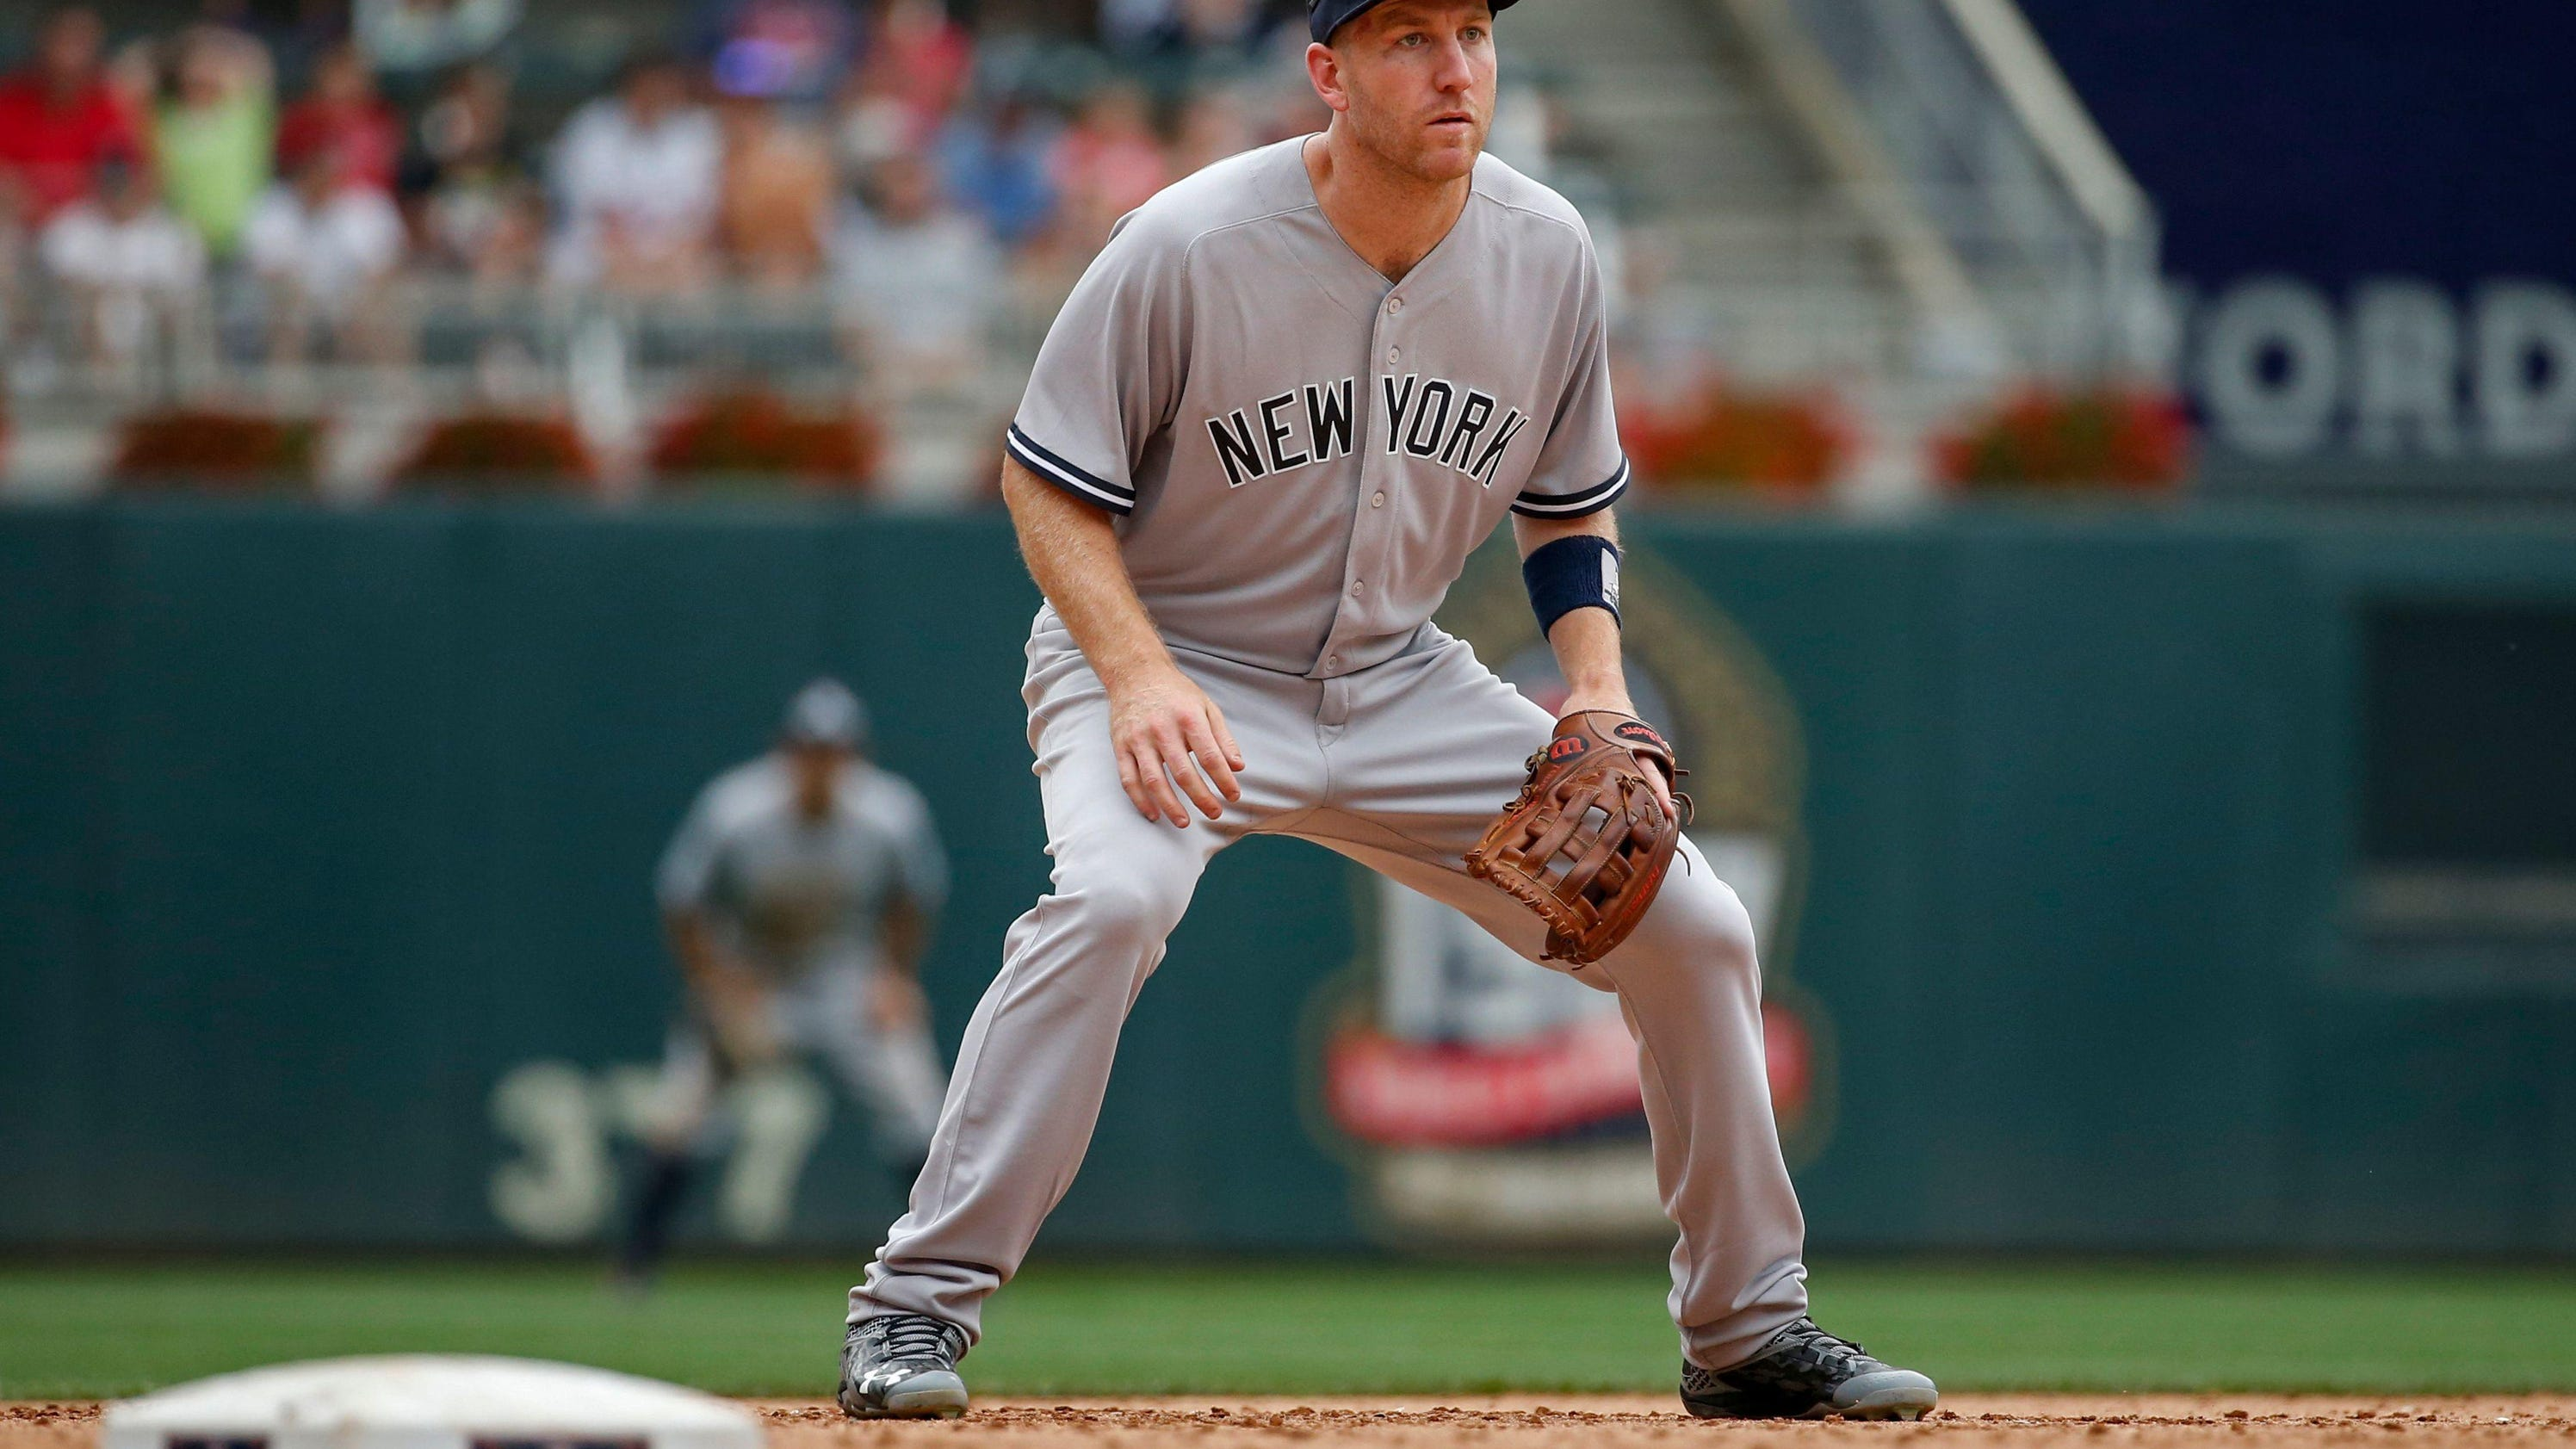 8f0eacf2a ... Jersey Chicago White Sox 21 White Pinstripe Todd Frazier wont request  ONeills No.